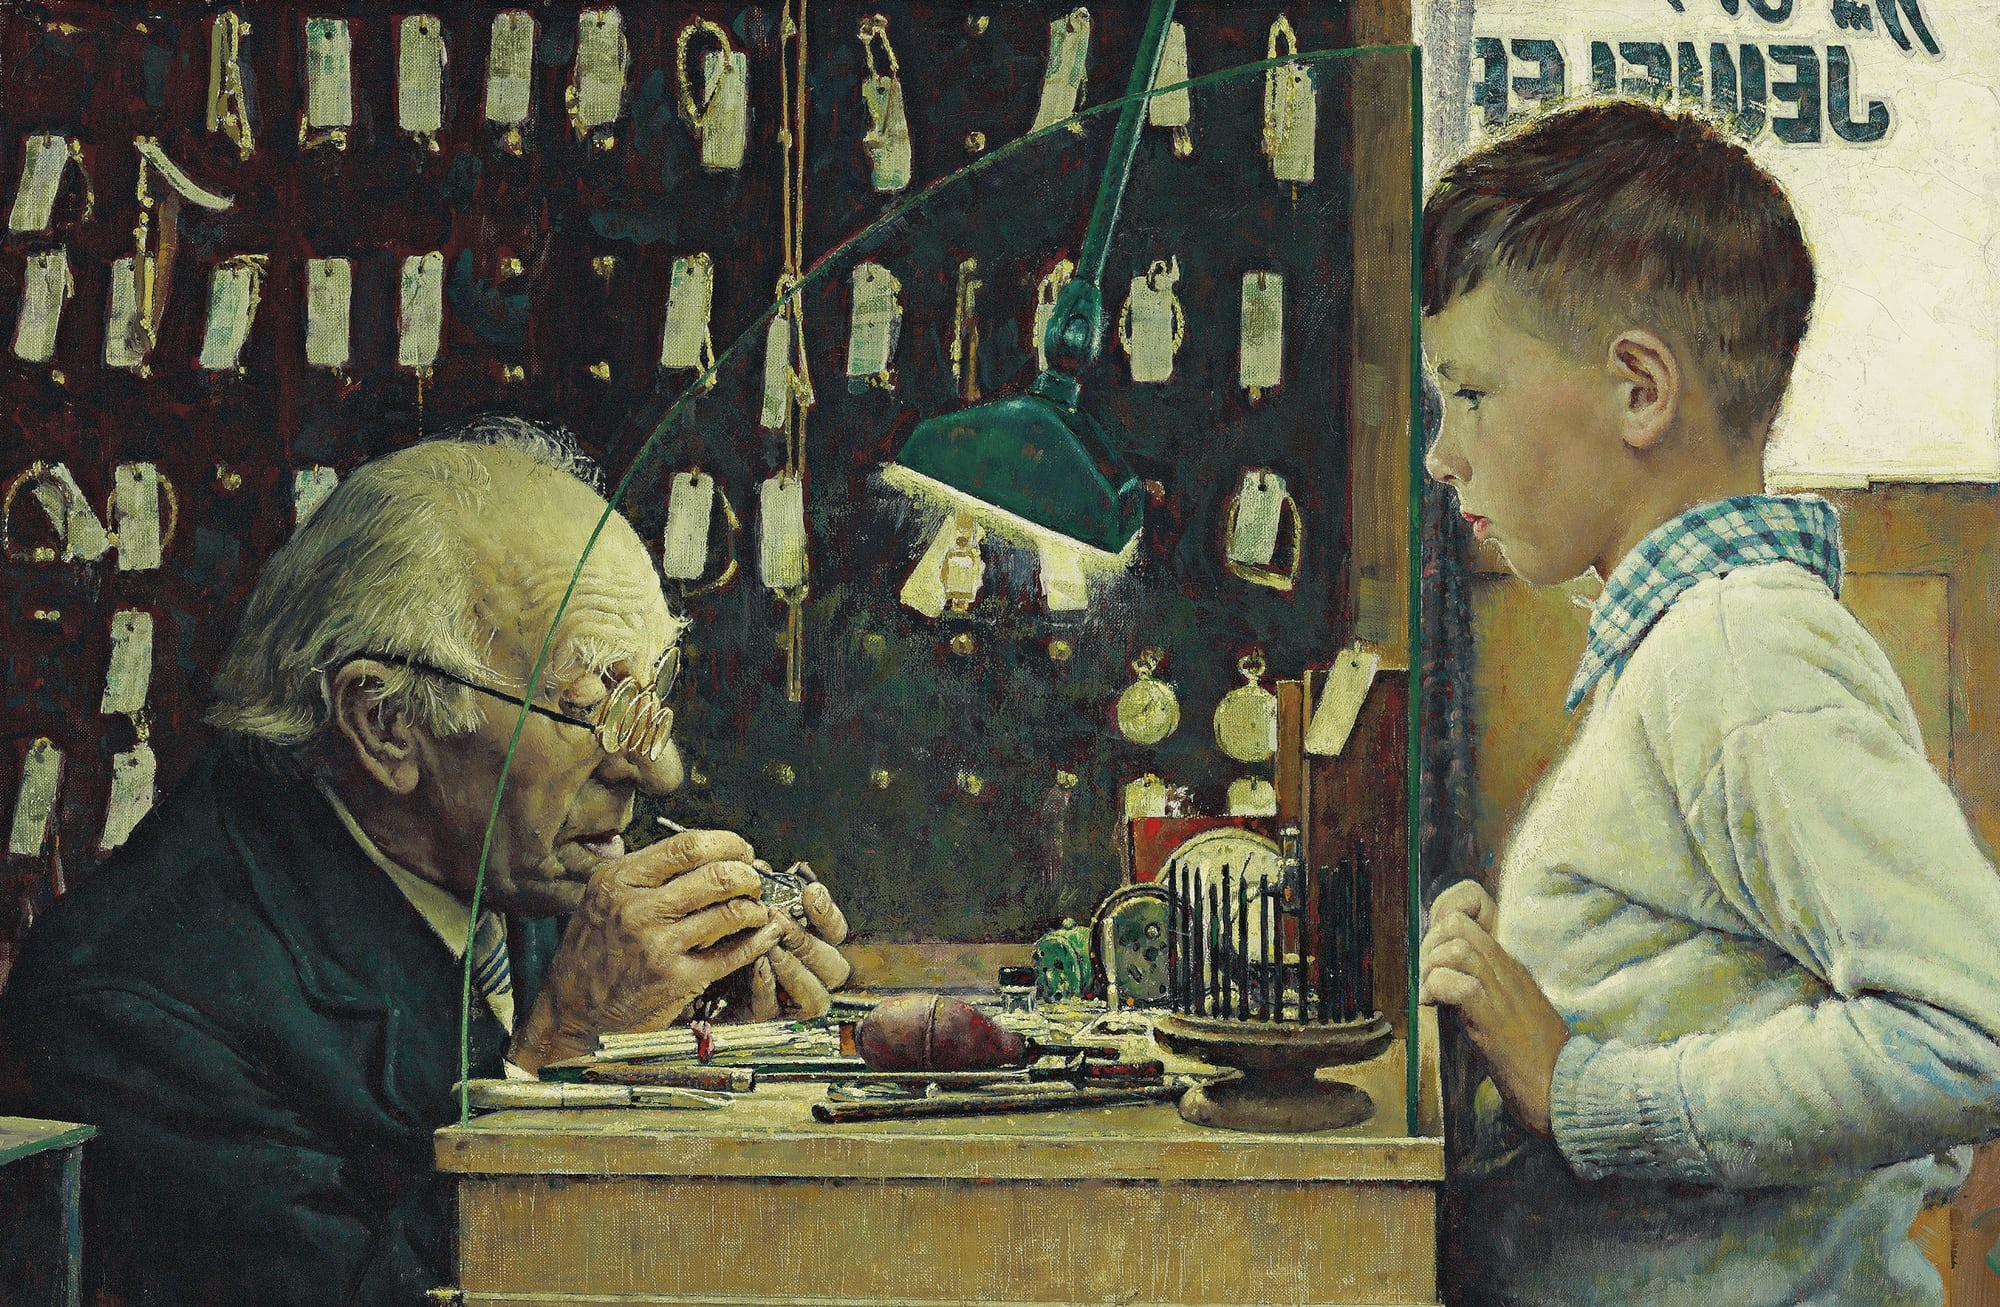 Rockwell what makes it tick the watchmaker cropped.jpg?ixlib=rails 1.1